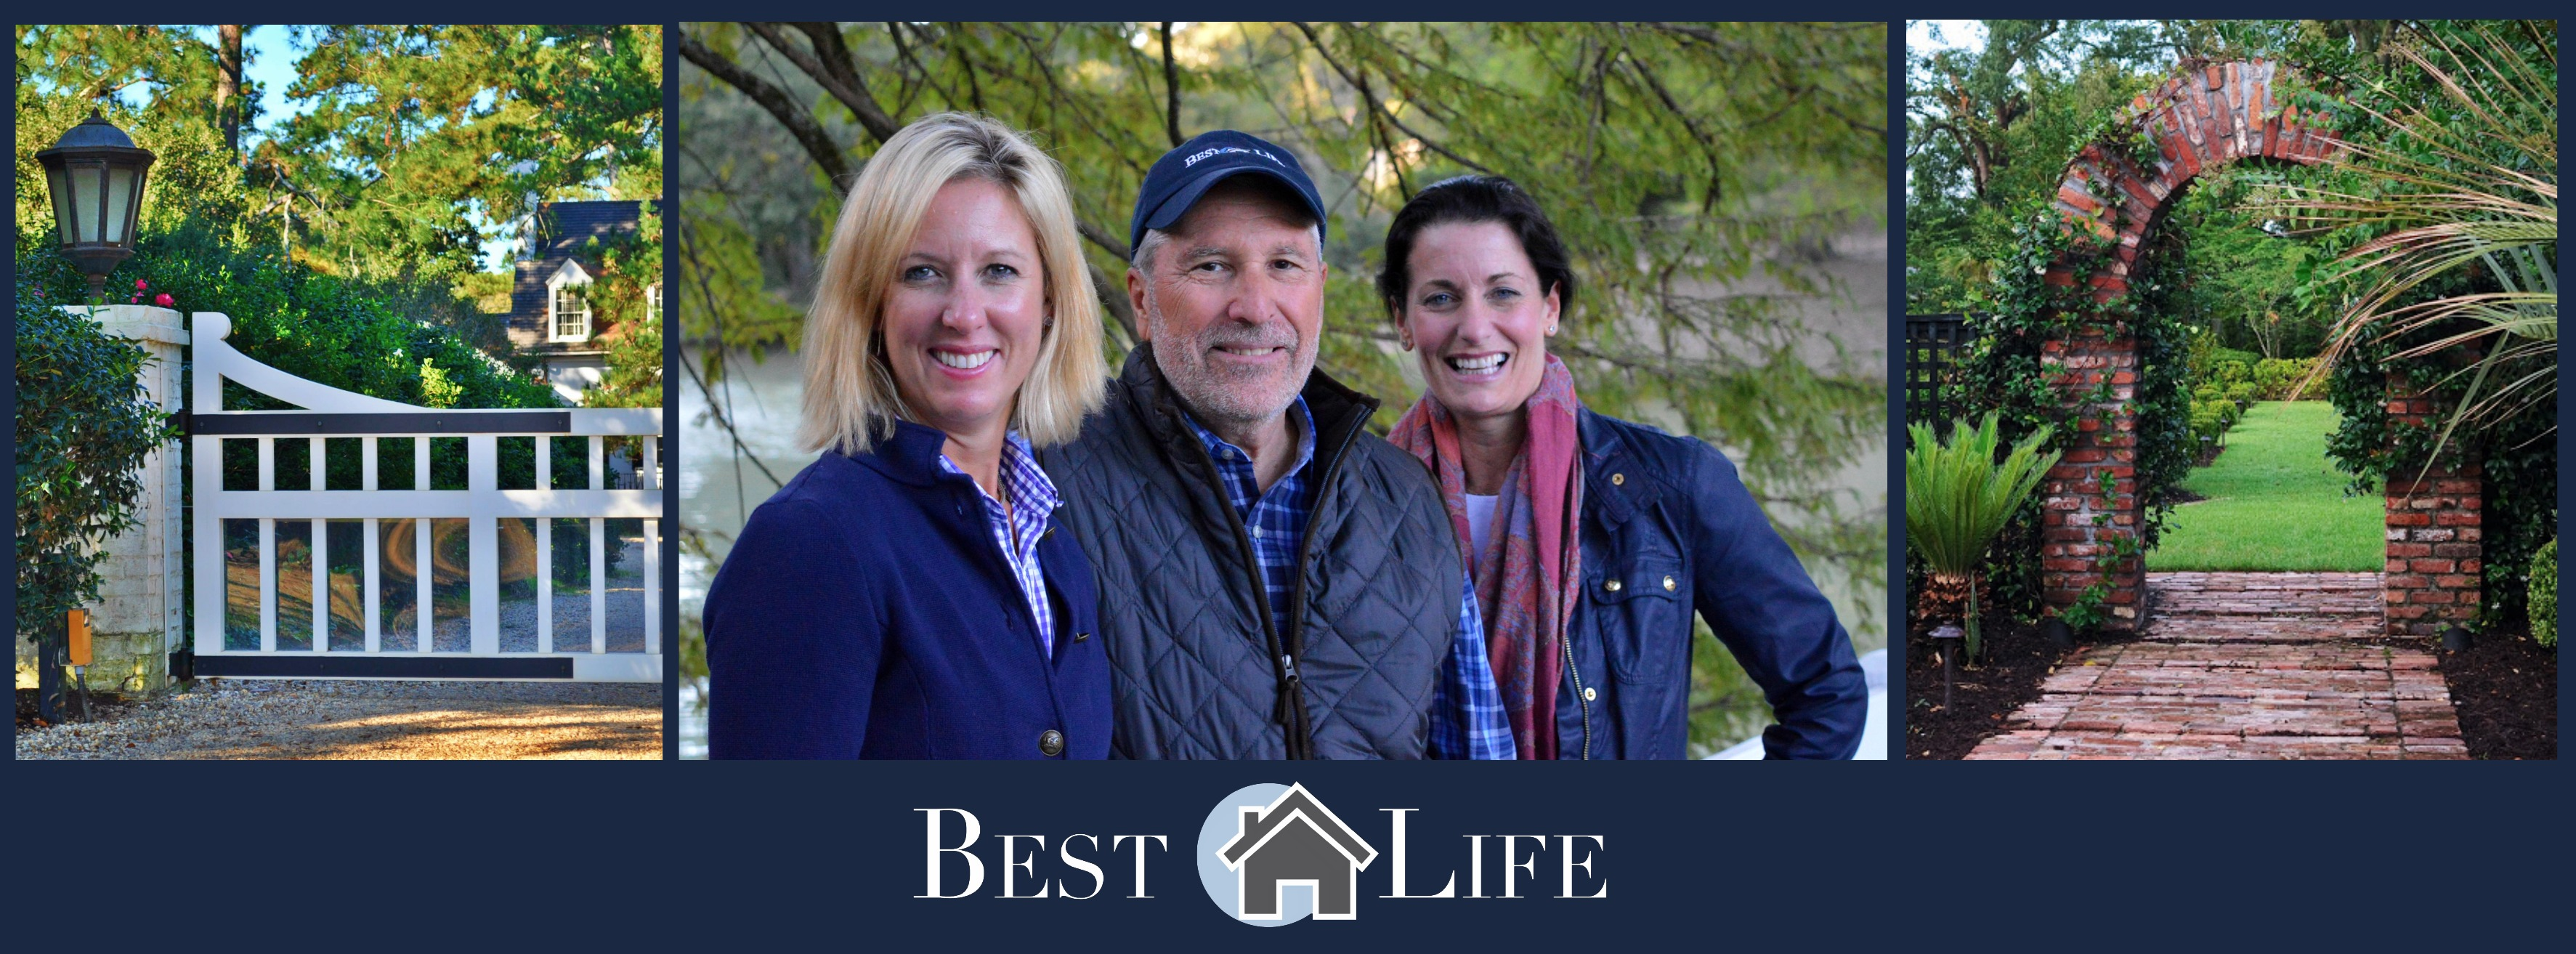 The Best Life Real Estate Team Aiken, SC